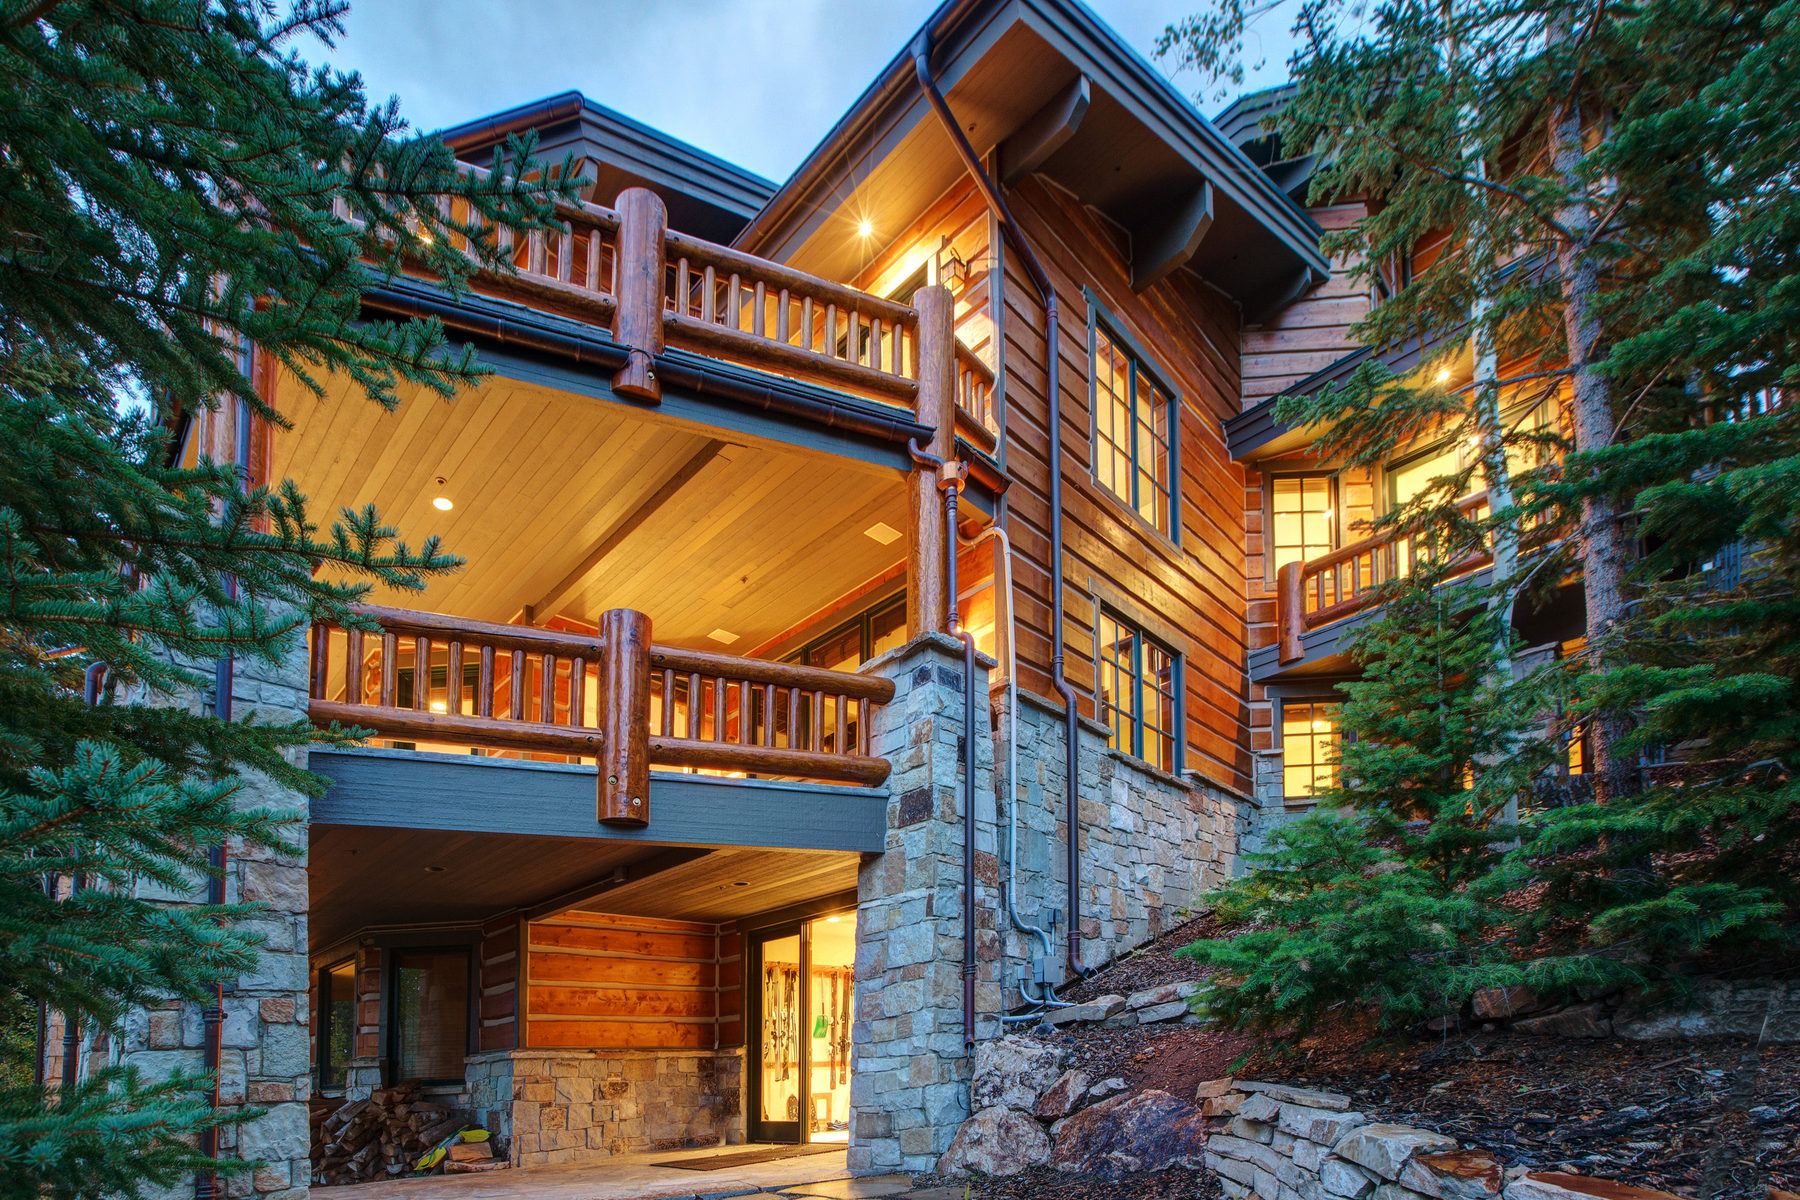 一戸建て のために 売買 アット Ski Home and Away on Deer Valley's Kimberley Trail 8025 Bald Eagle Dr Park City, ユタ, 84060 アメリカ合衆国